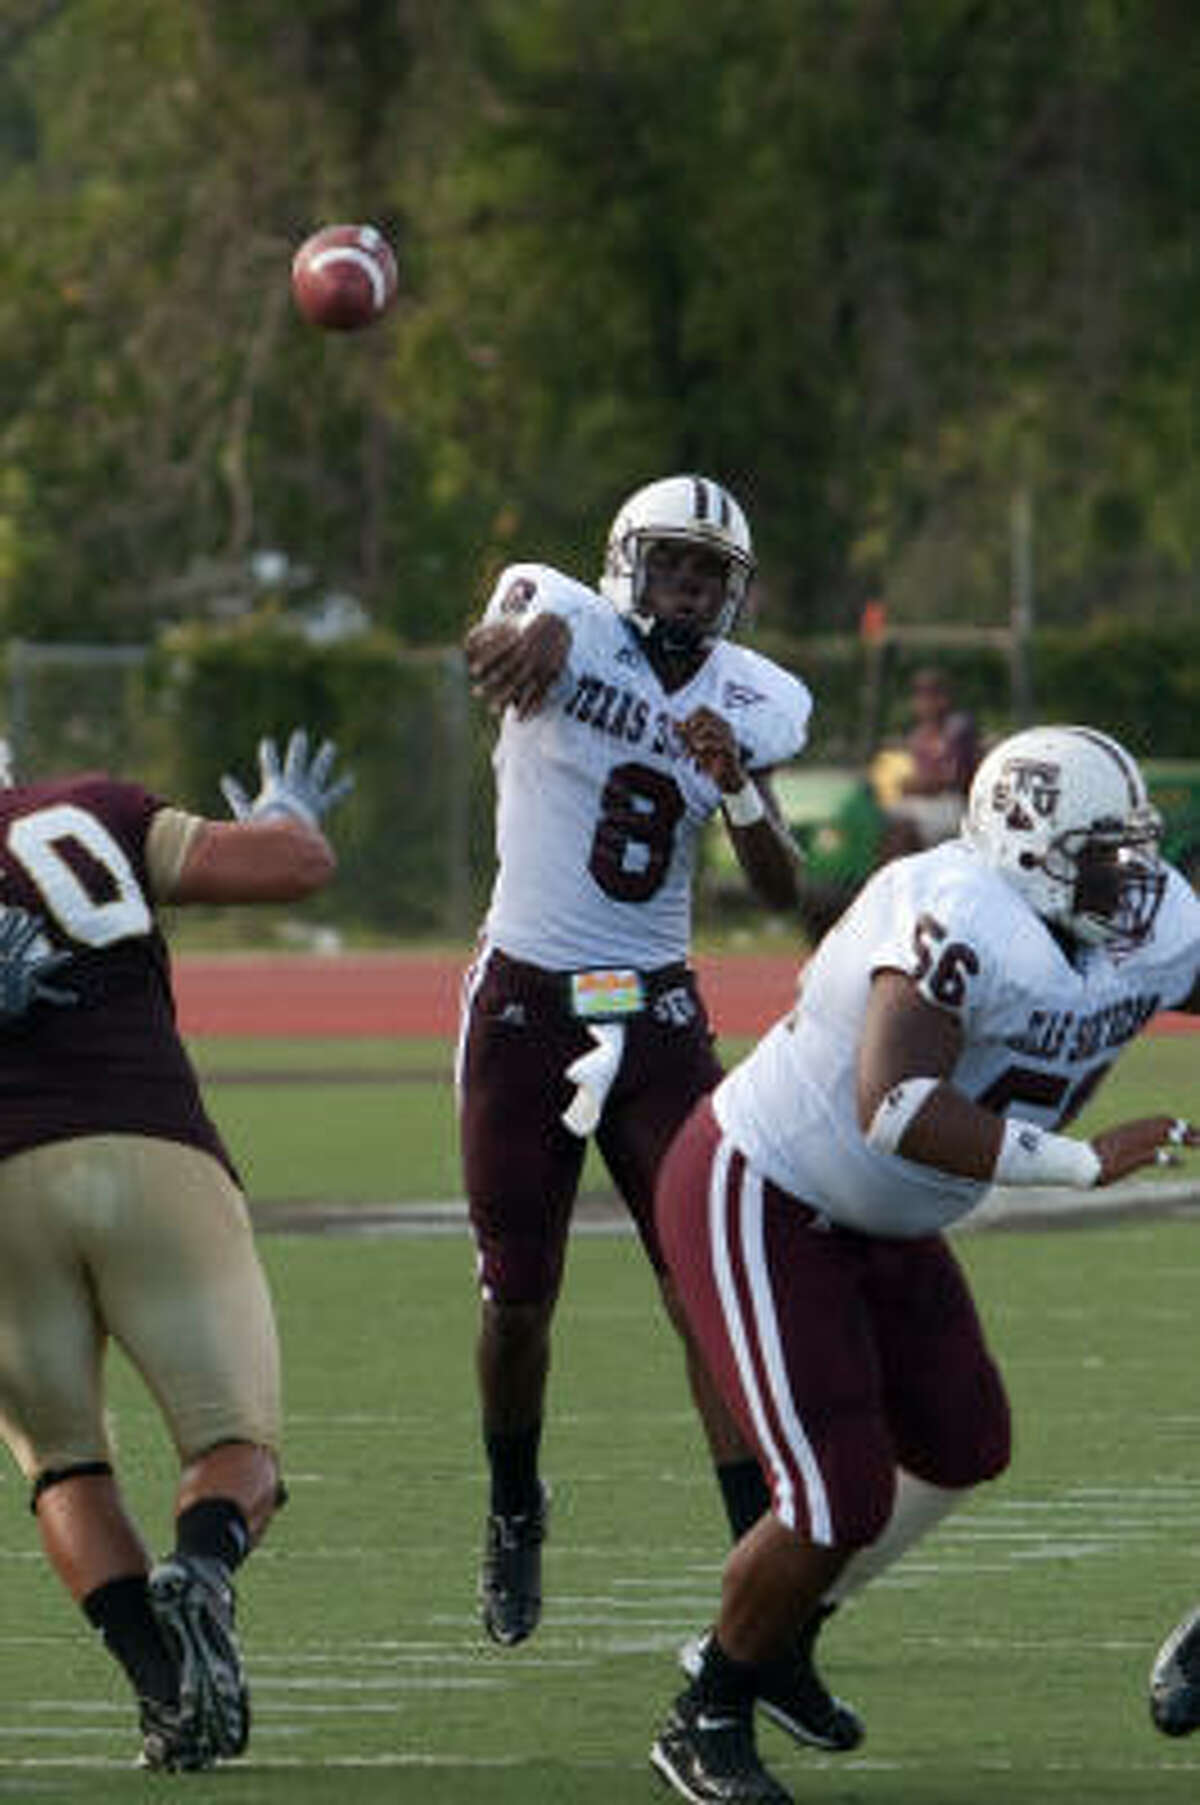 Texas Southern quarterback Arvell Nelson throws a pass during first quarter action against Texas State University.